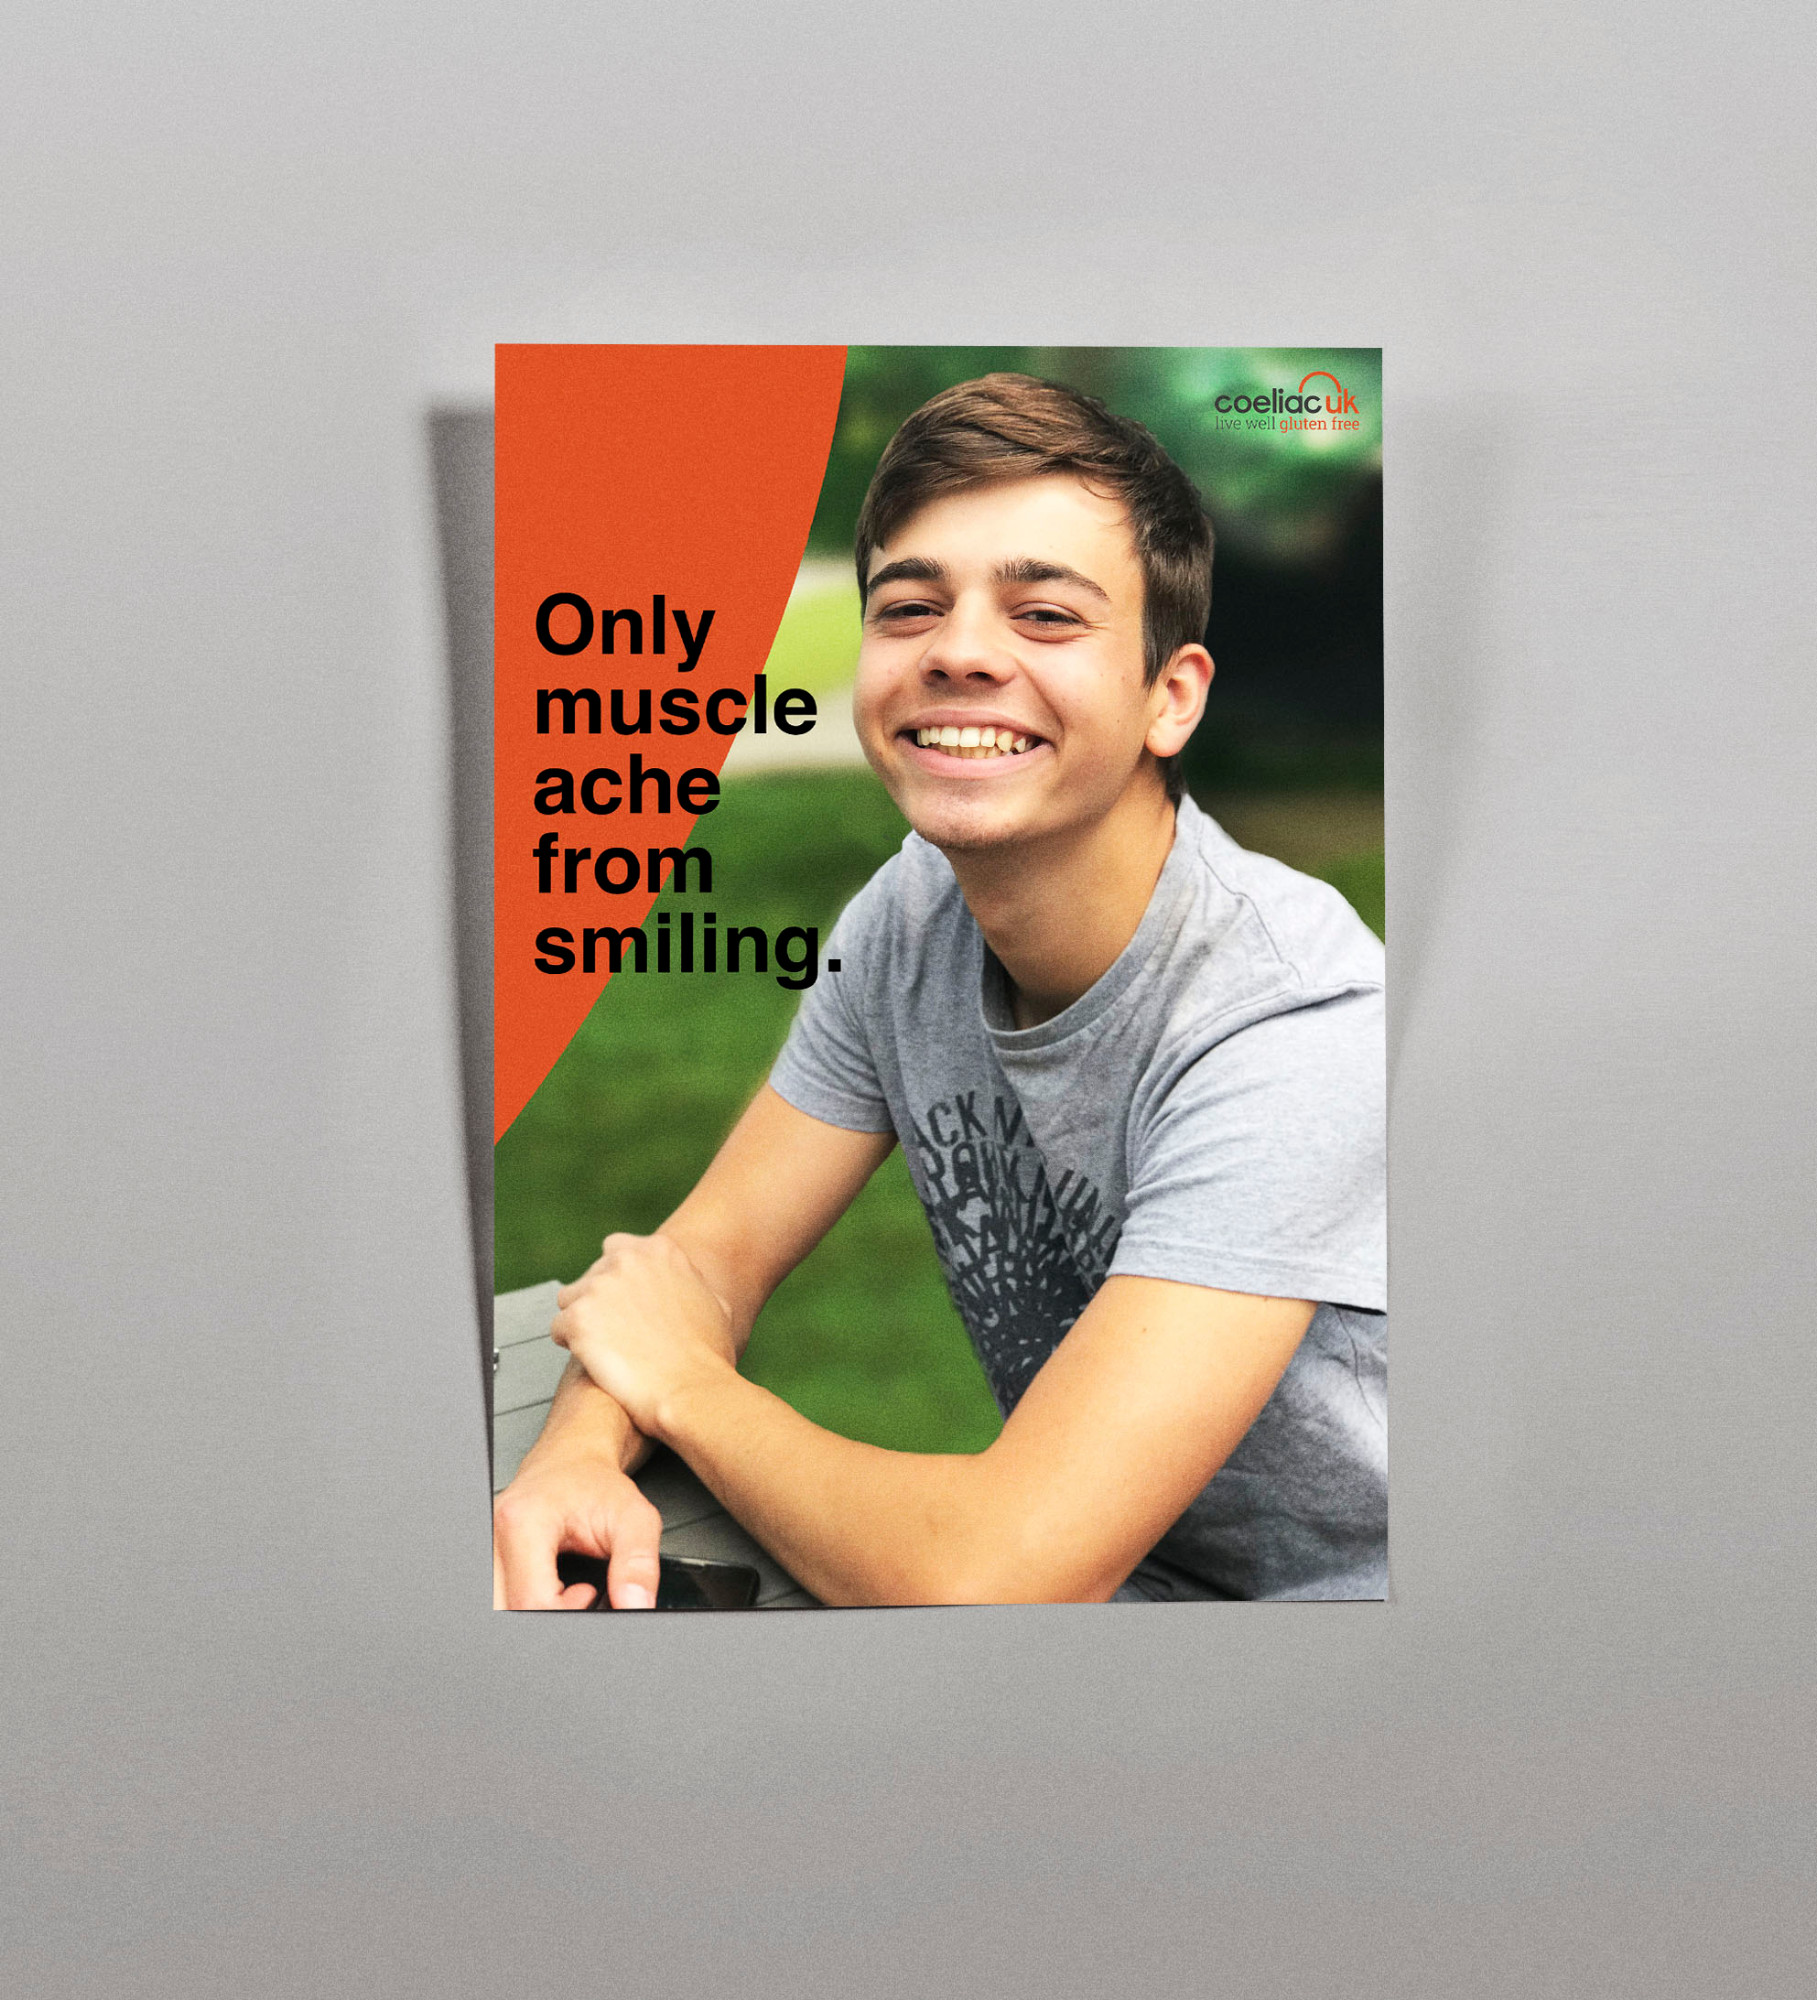 """Only muscle ache from smiling"". A poster that expresses the happiness felt by someone after being diagnosed with Coeliac disease, as they begin to feel better again."